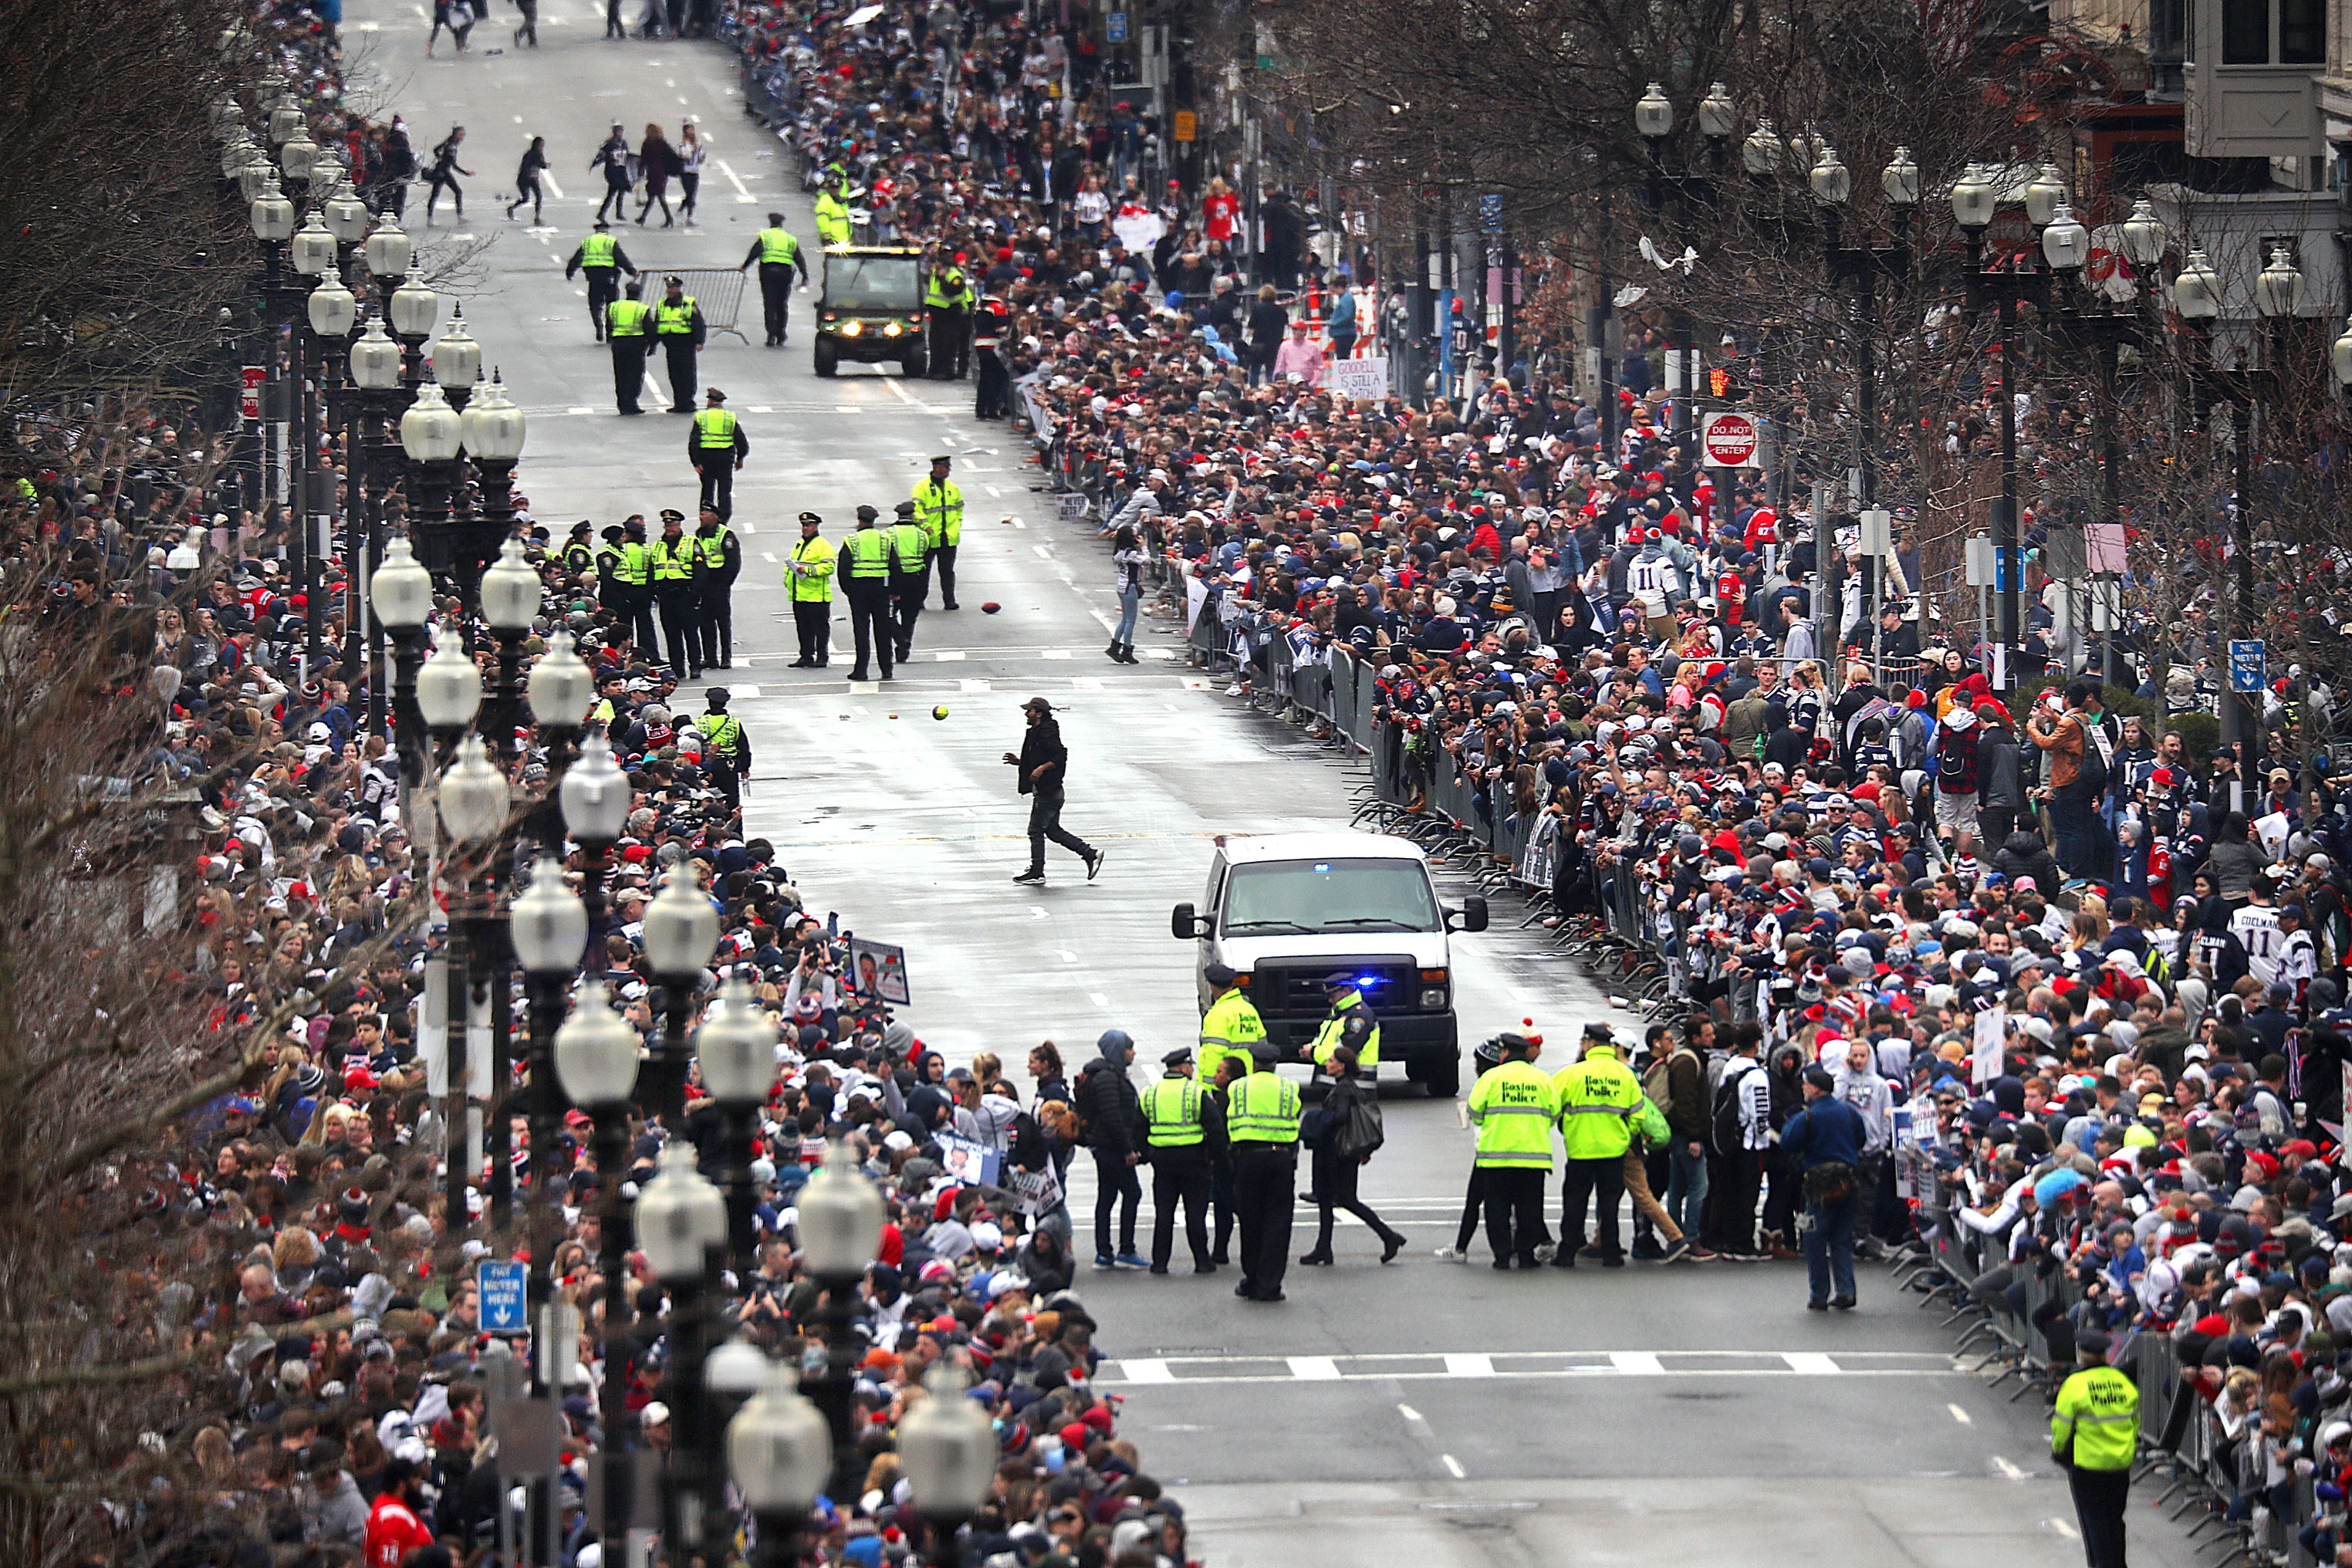 Patriots Super Bowl Parade Live Blog: Here's The Latest From pertaining to Patriots Super Bowl Parade 2019 Map